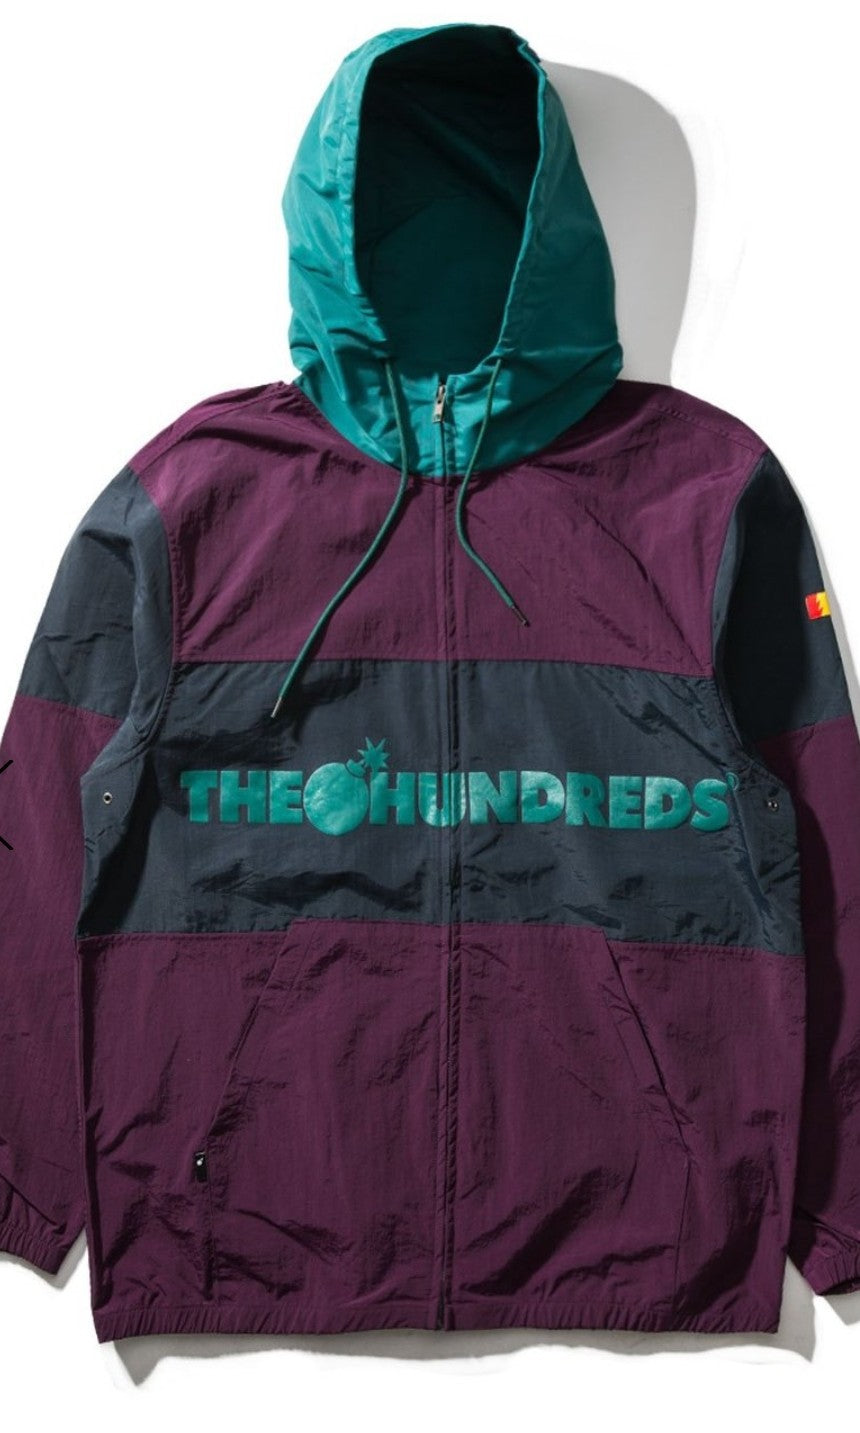 The Hundreds Port Jacket